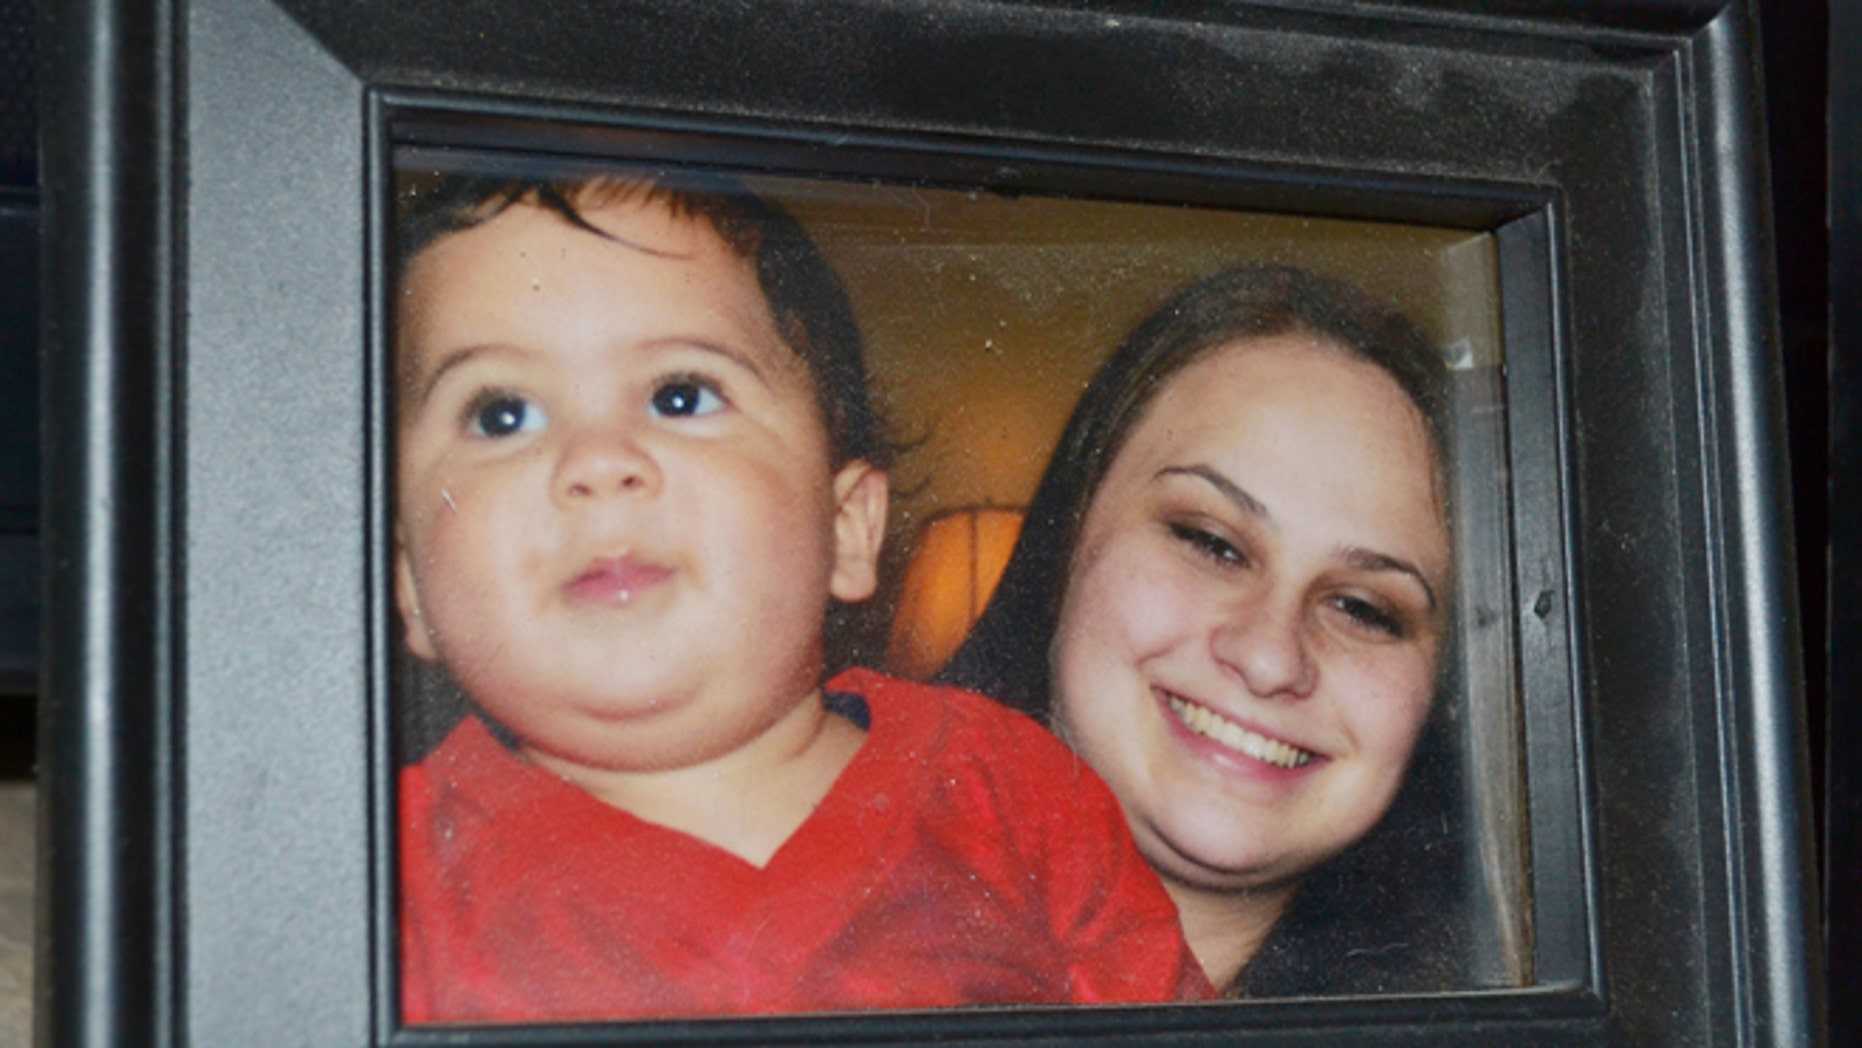 Photo provided by the family shows Bryson Mees-Hernandez, 9 months, with his mother, Crystal Mees, in Houston.